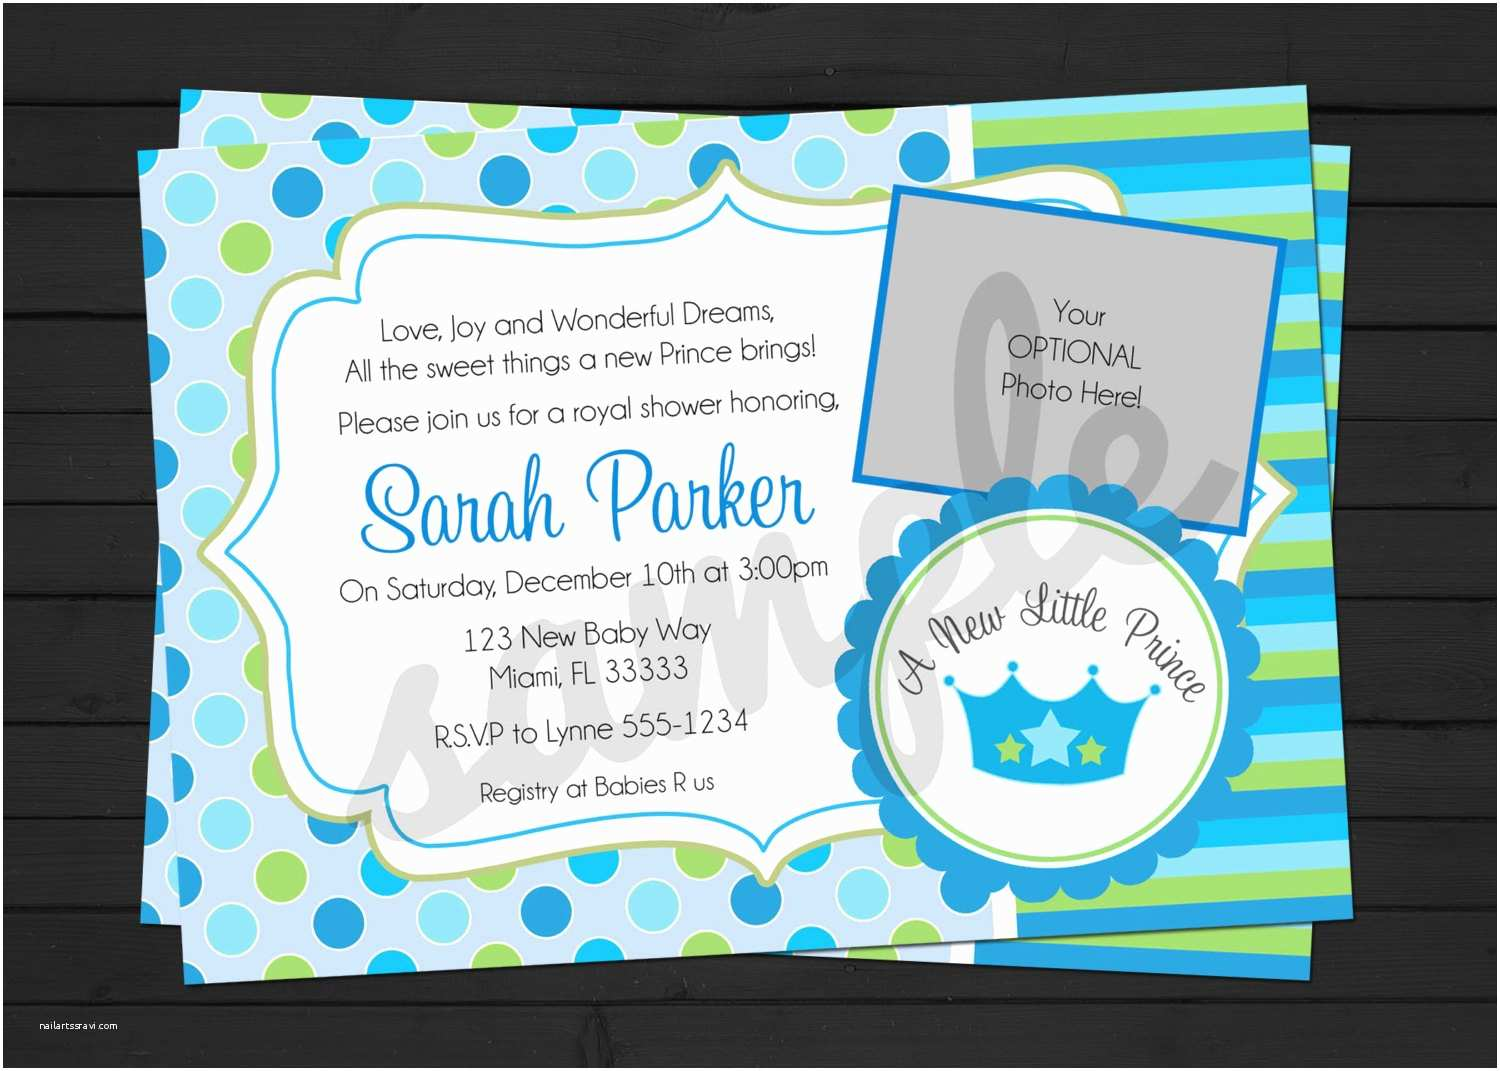 Little Prince Baby Shower Invitations Little Prince Baby Shower Invitations